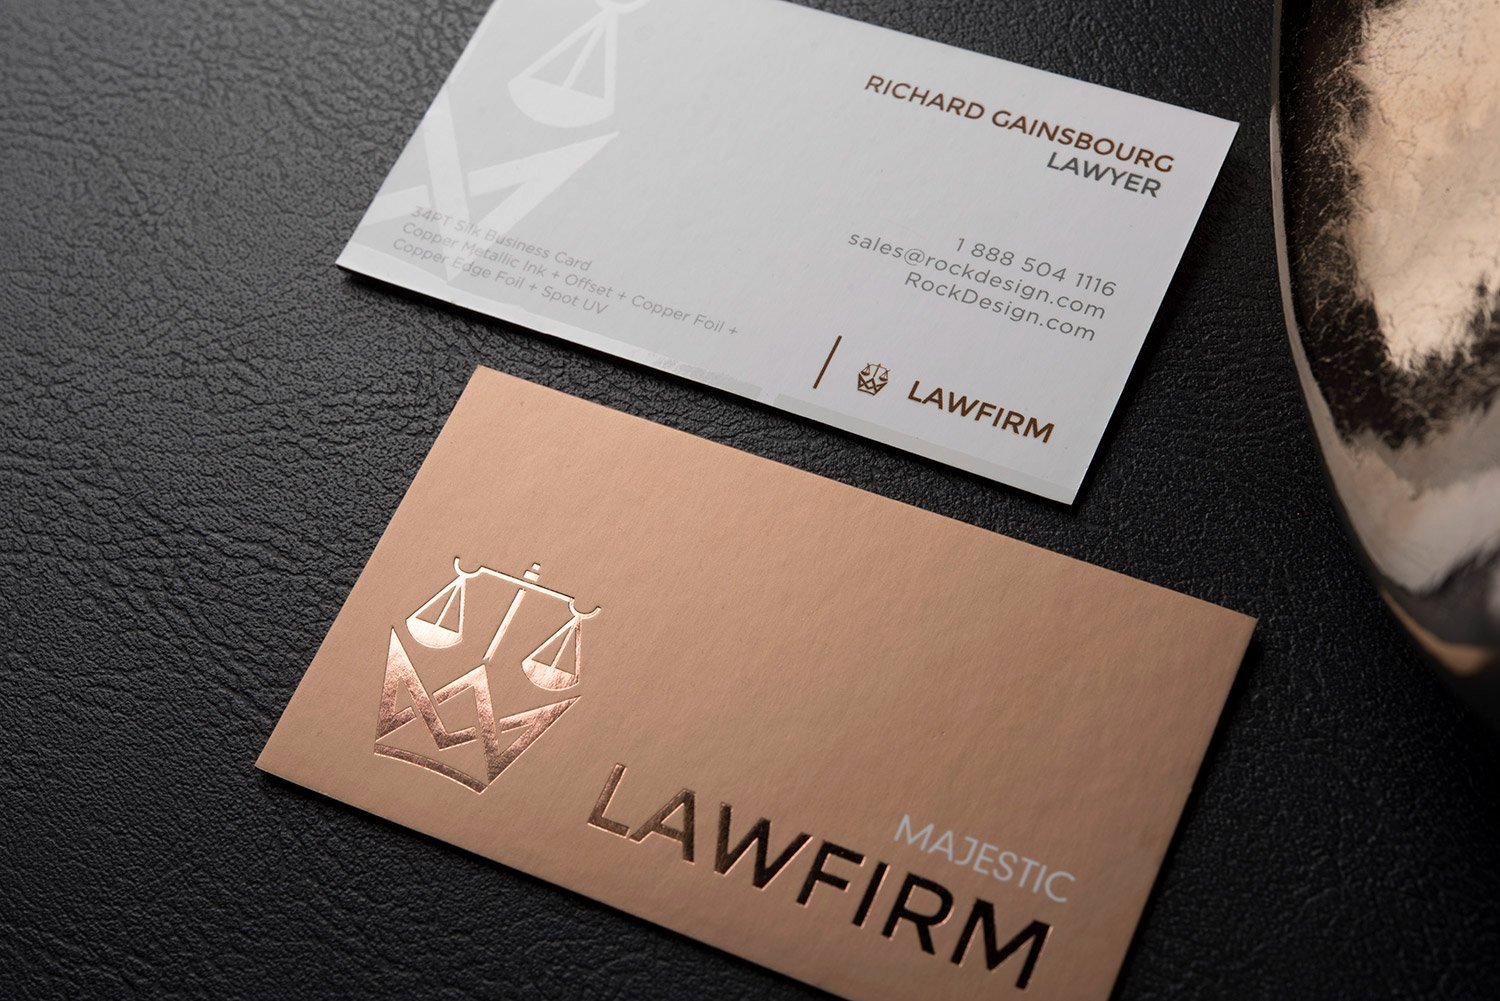 Law Office Business Cards Unique Double Sided Name Card Design Template with Spot Uv – Majestic Law Firm